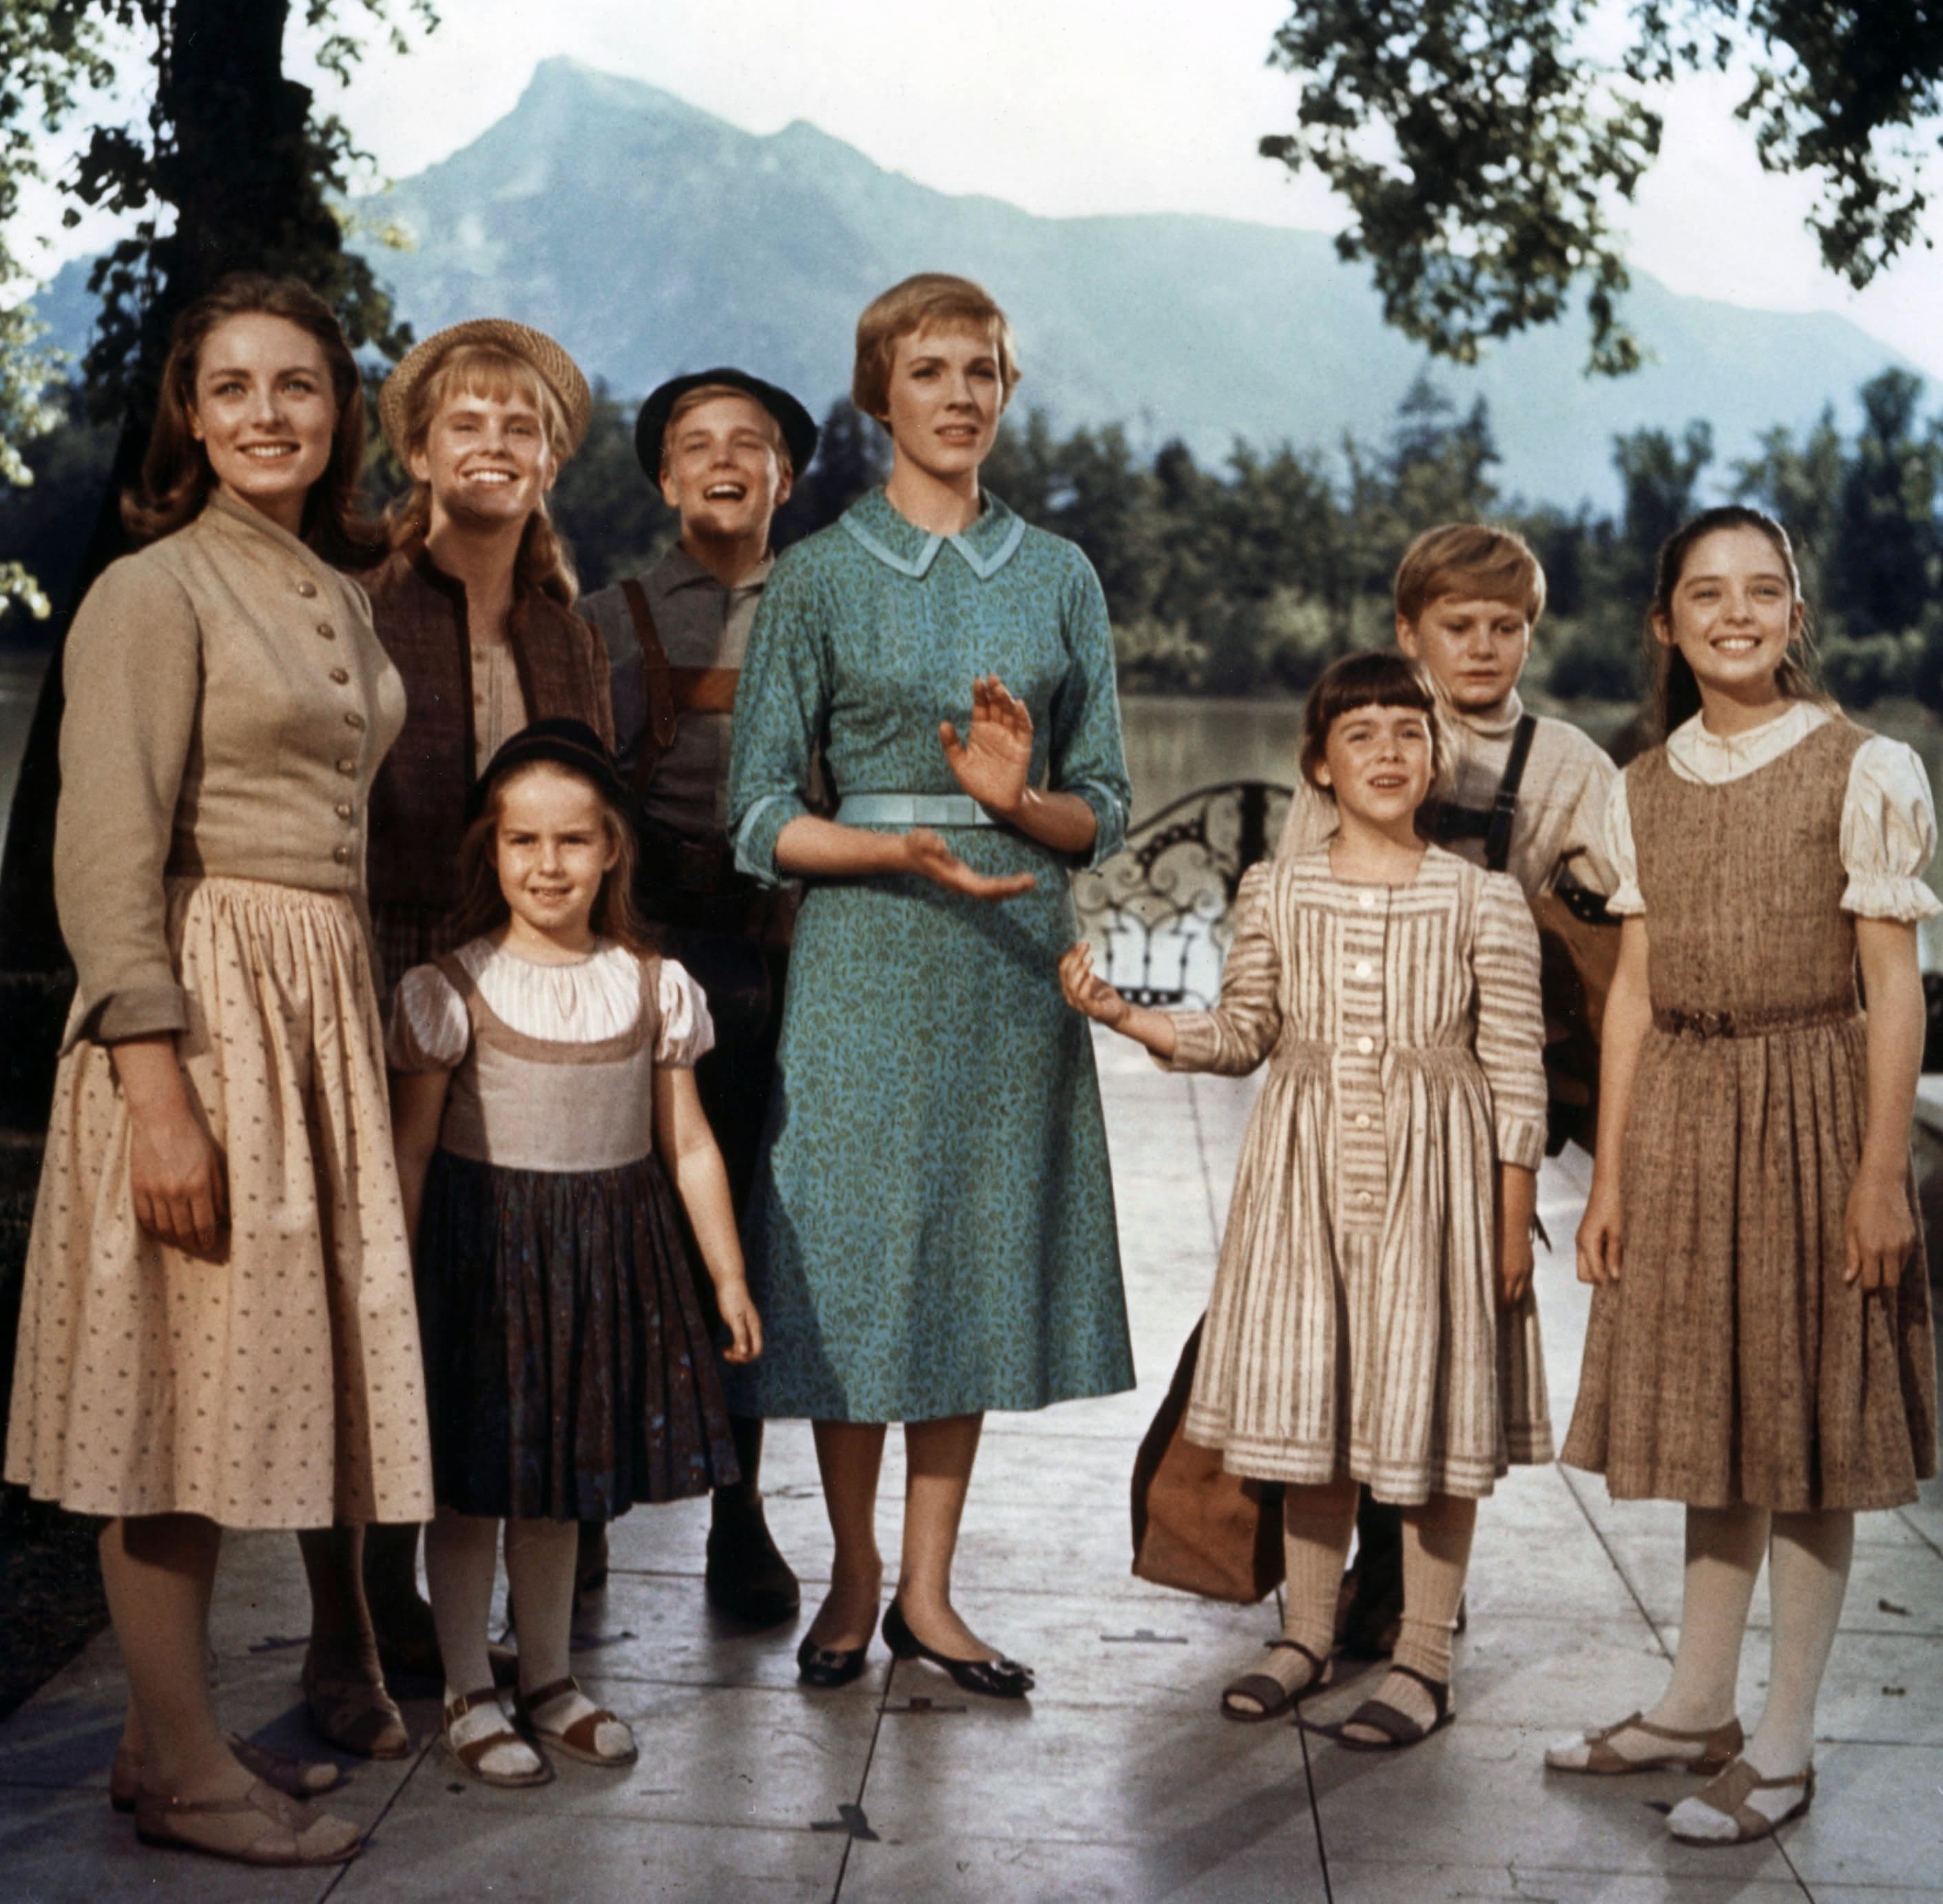 The Sound of Music cast: Where are they now? | Gallery